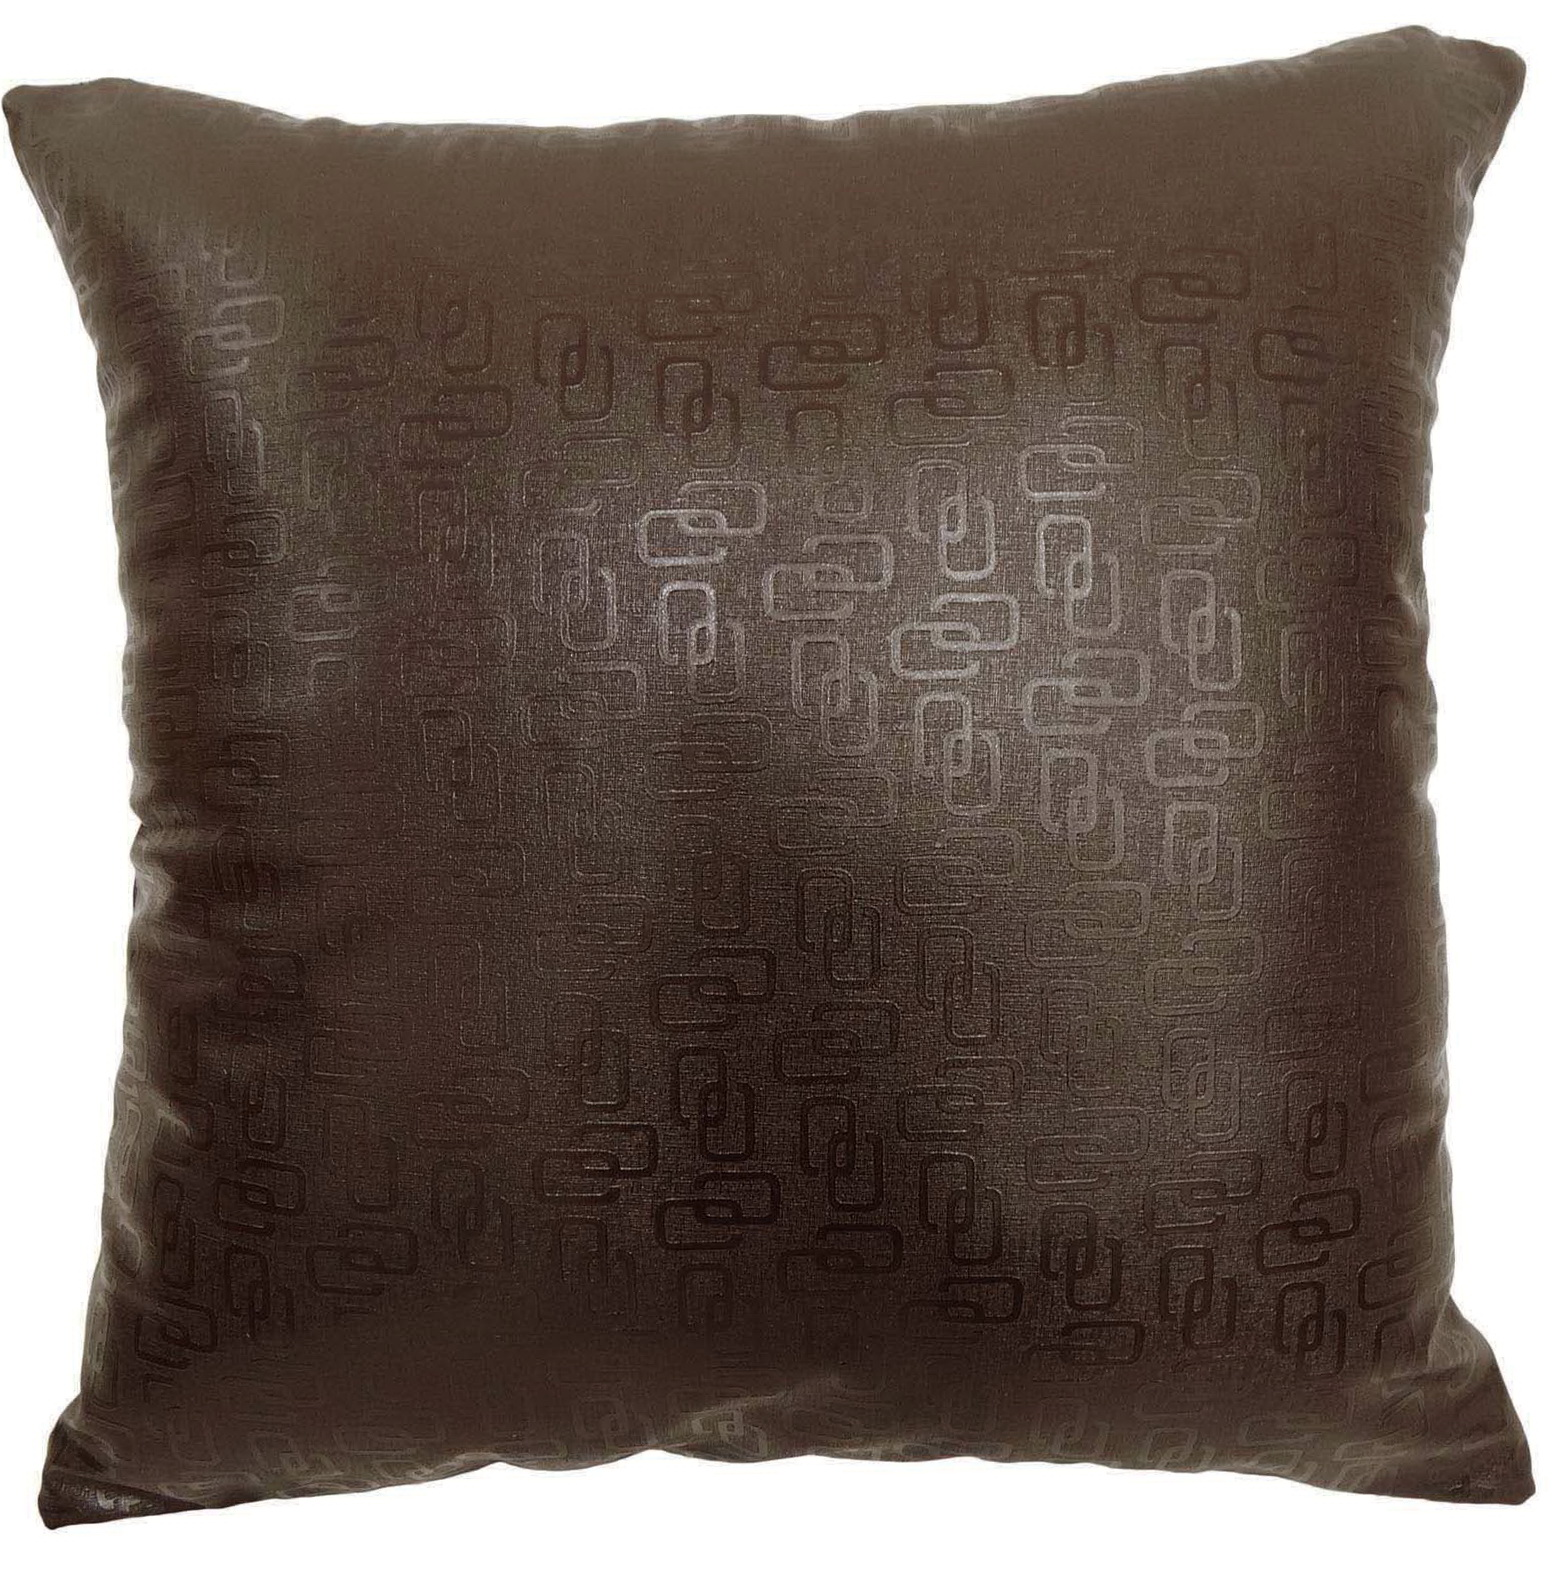 Leather Cushion Covers Australia